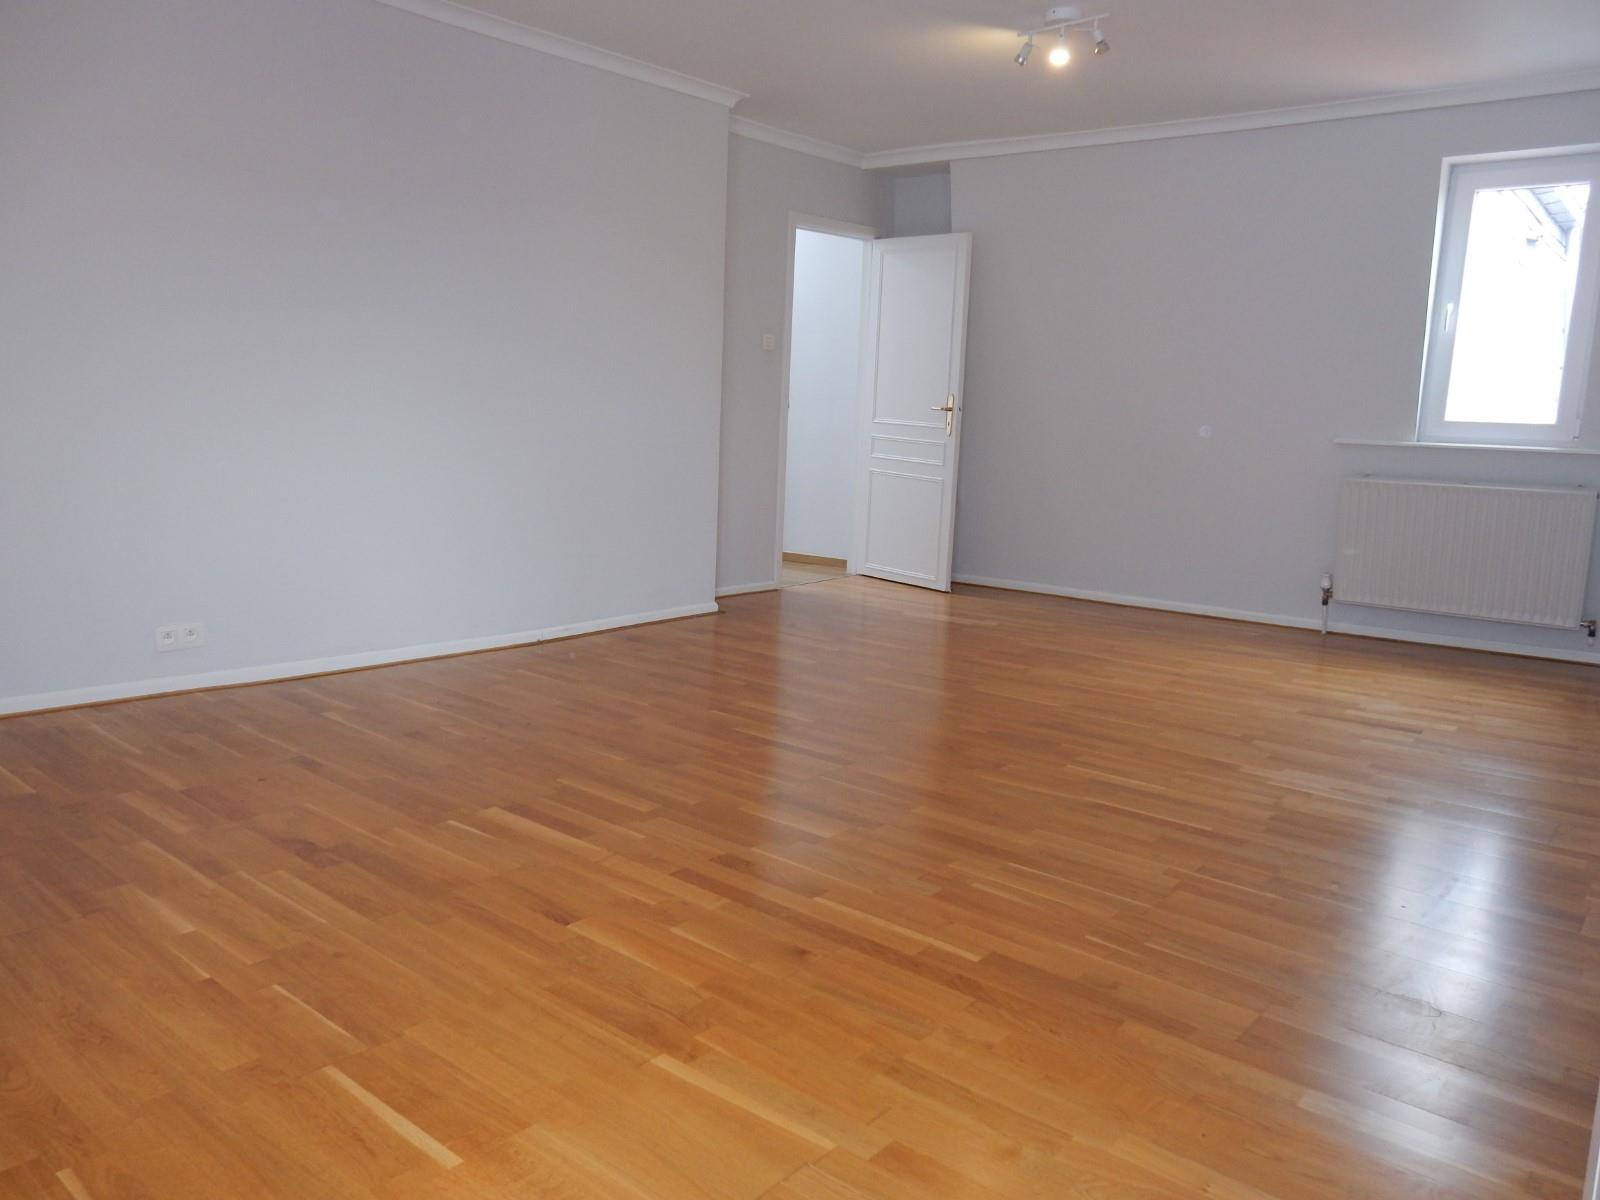 Flat in charming house - Etterbeek - #3183224-11